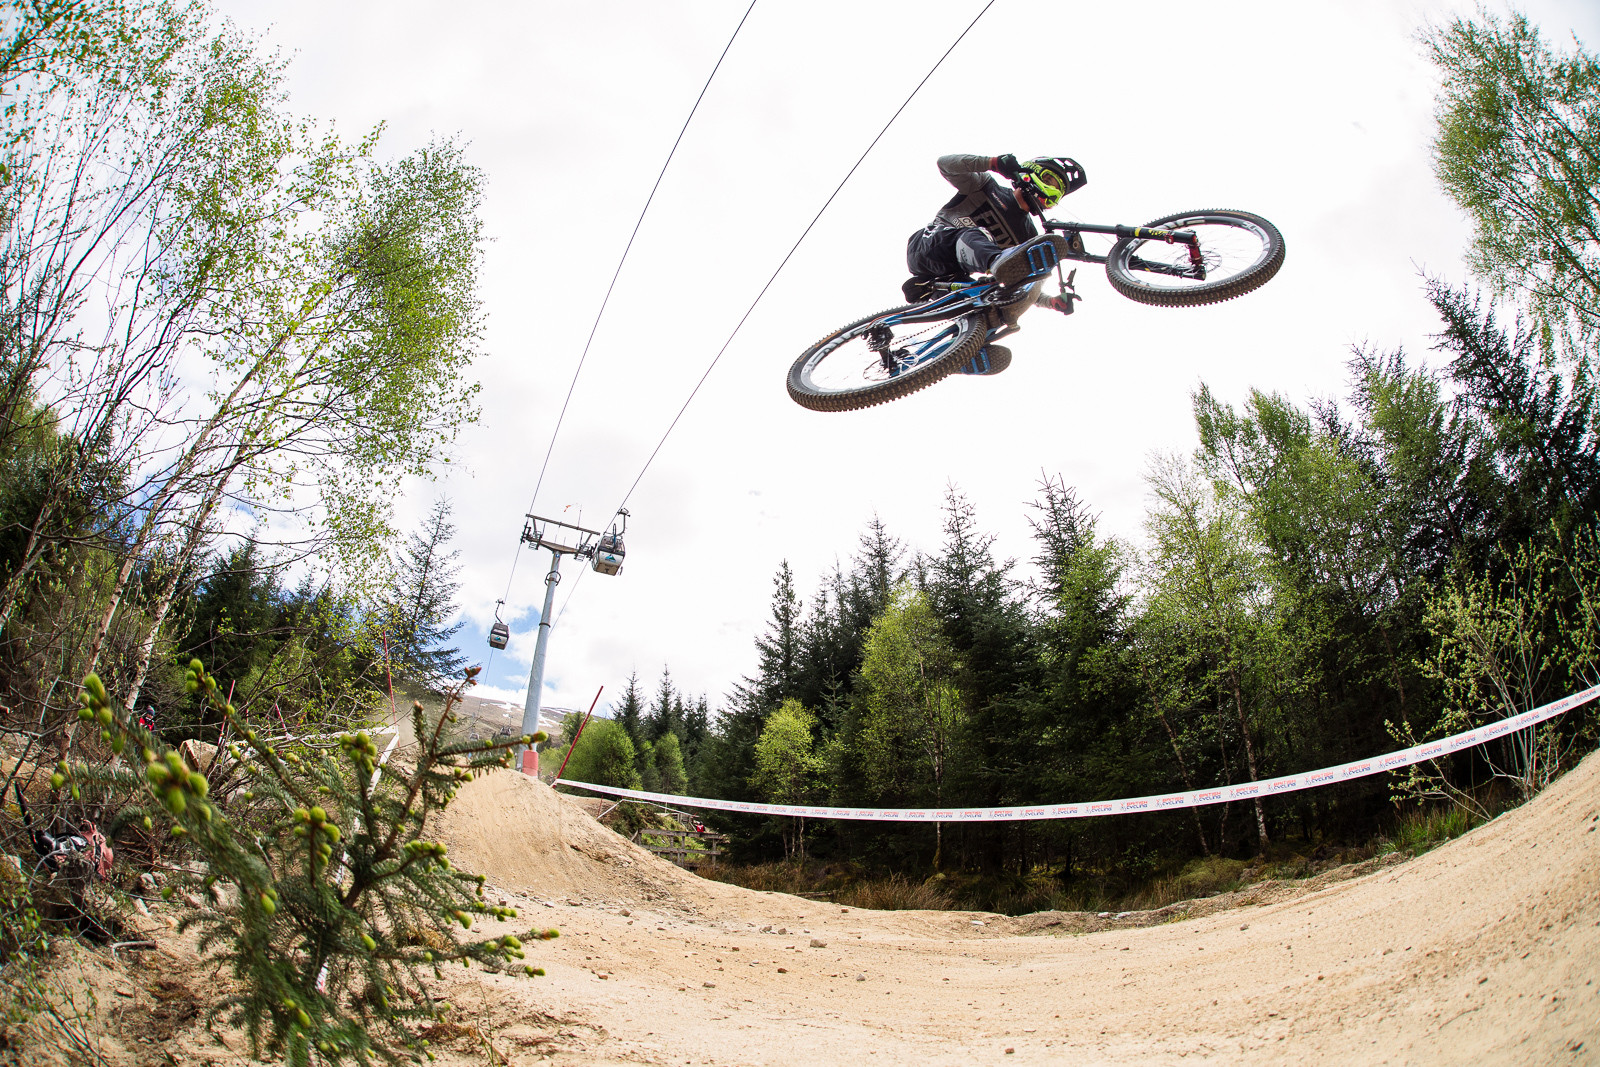 Scott Mears, Fort William BDS - Fort William DH Action from the British Downhill Series - Mountain Biking Pictures - Vital MTB